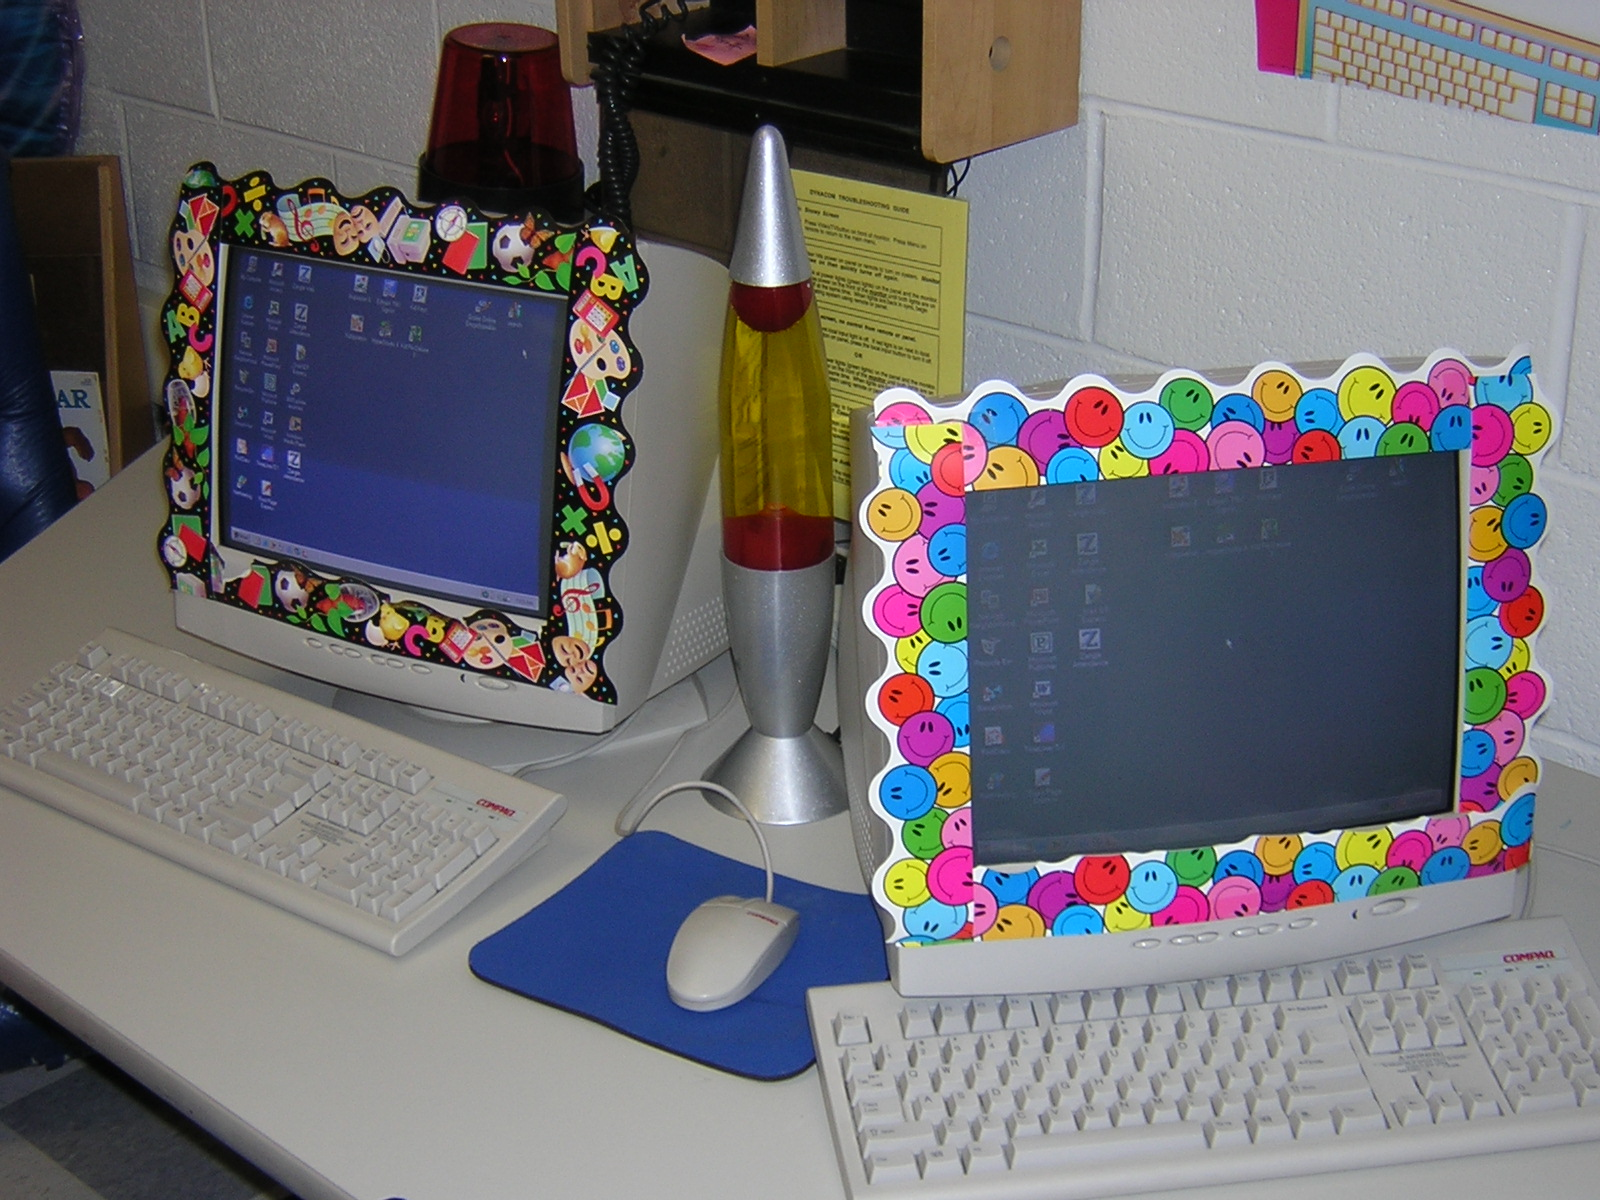 Computer Classroom Decoration : T v computer monitor decorations zacktivities